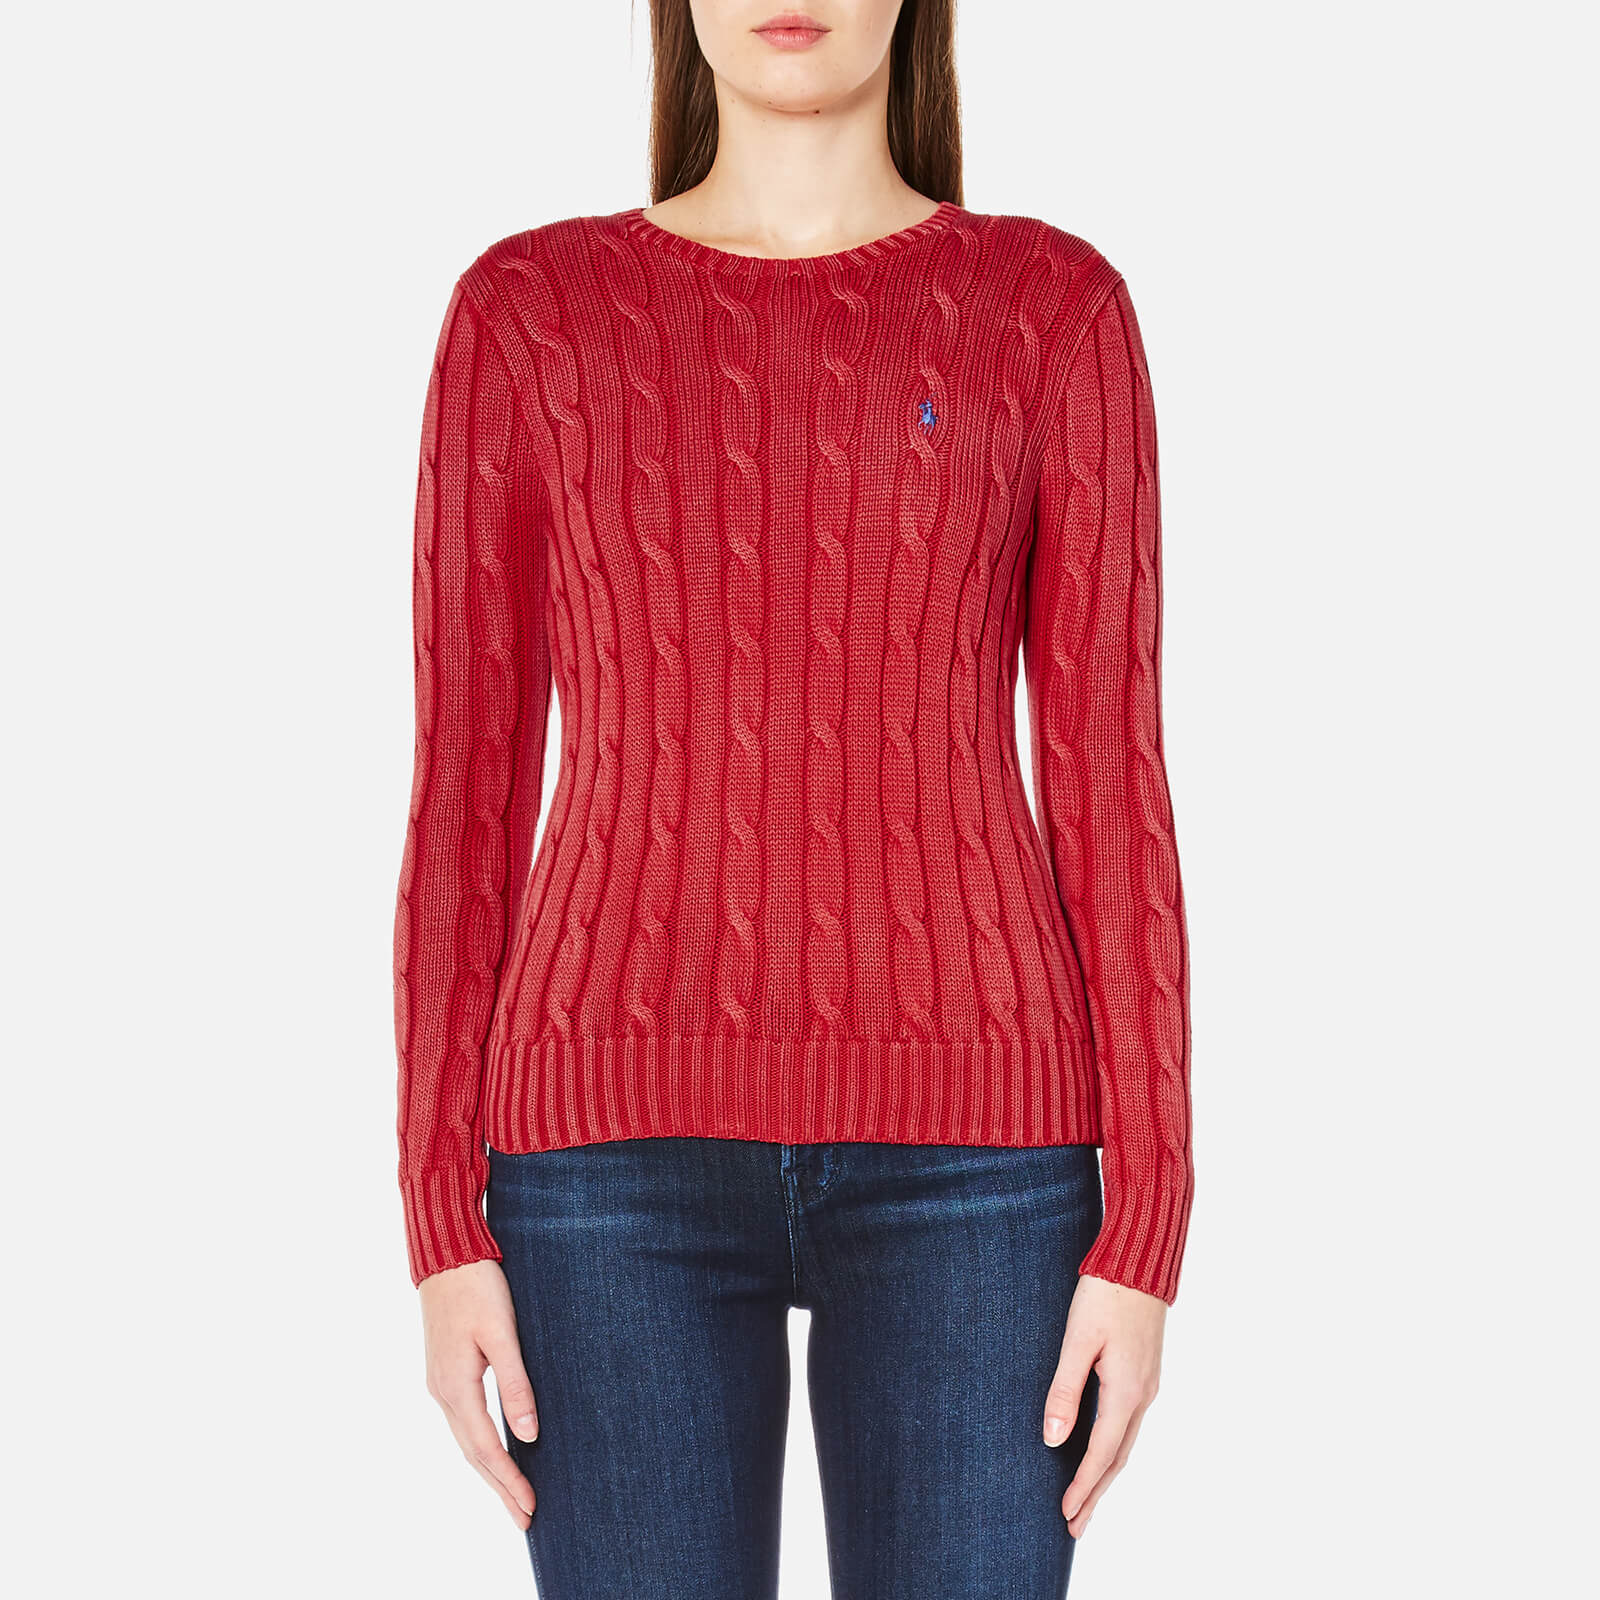 179b41415339 Polo Ralph Lauren Women's Julianna Jumper - Faded Red - Free UK Delivery  over £50